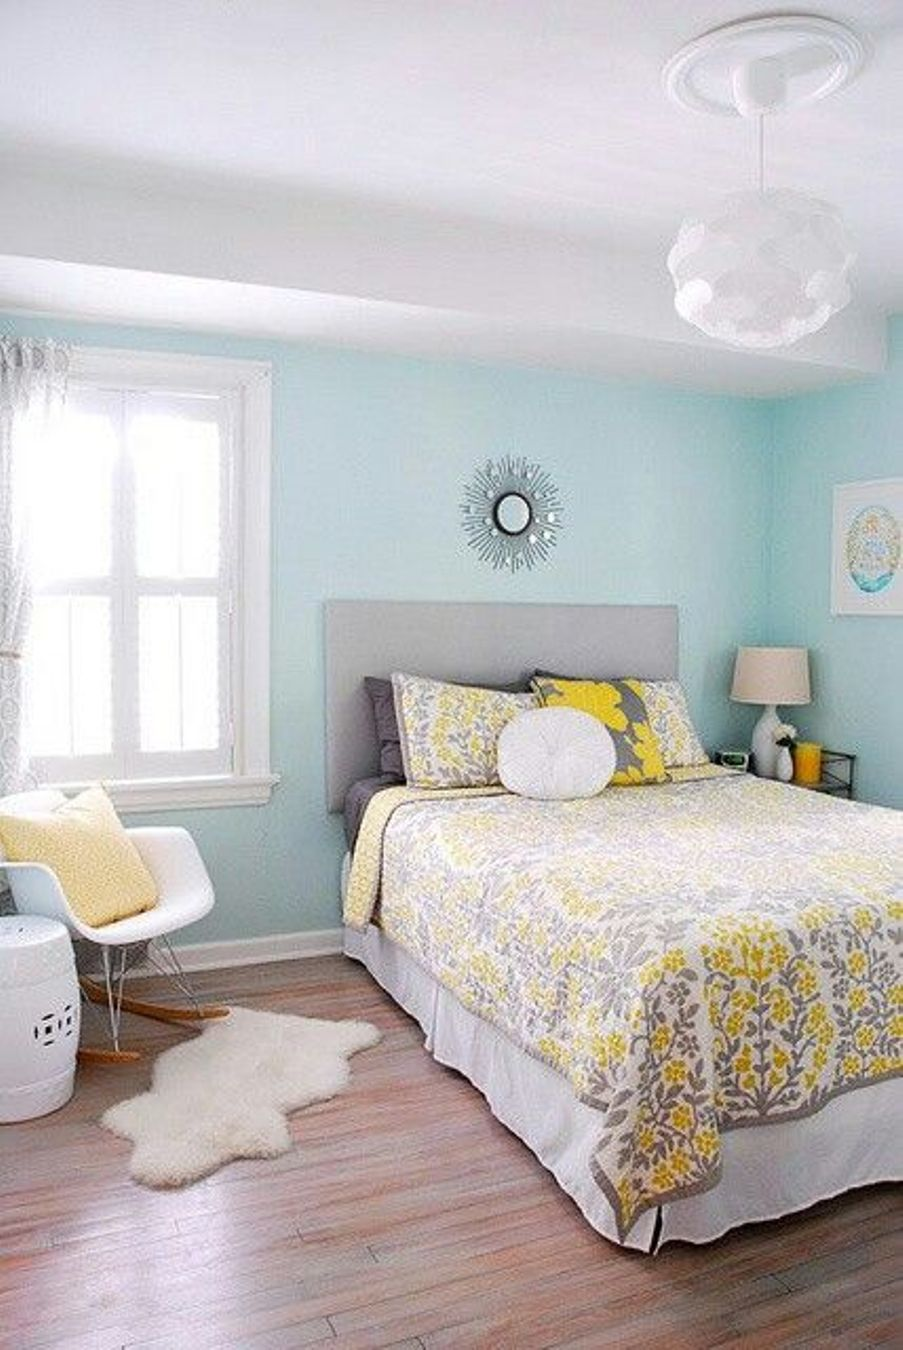 Best paint colors for small room some tips homesfeed - Blue bedroom paint ideas ...